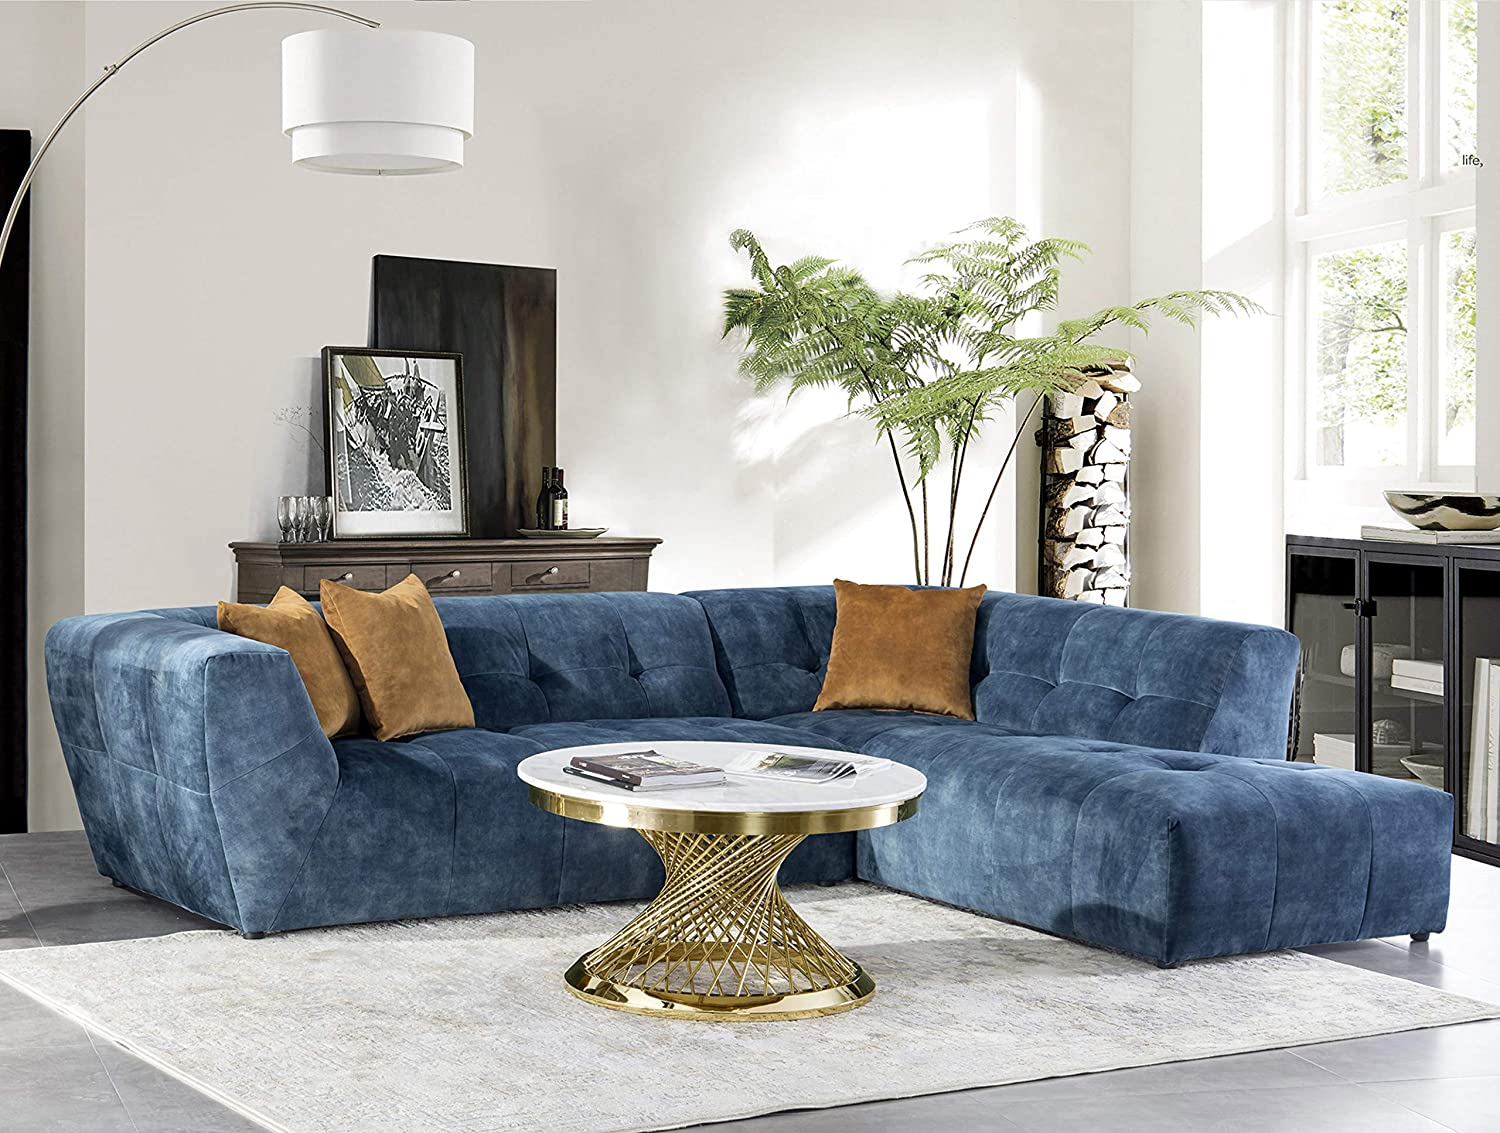 Acanva Luxury Mid Century Tufted Low Back Right Facing Sectional Sofa L Shape Couch Navy Blue Amazon Ca Home Kitchen